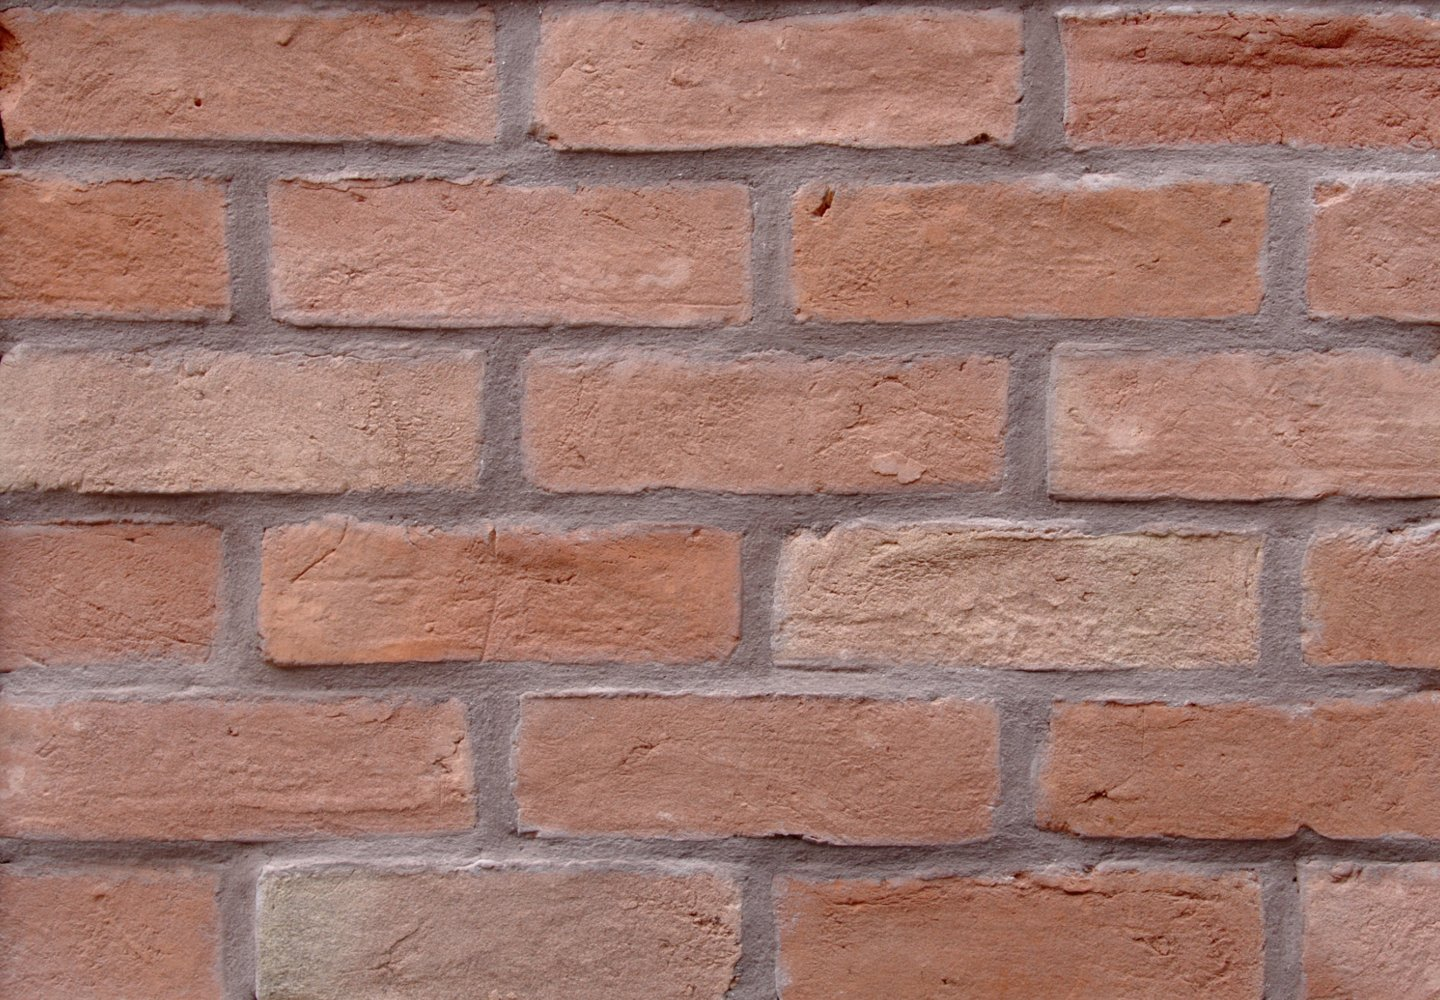 Brick Texture, Rock, Solid, Seamless, Scene, HQ Photo